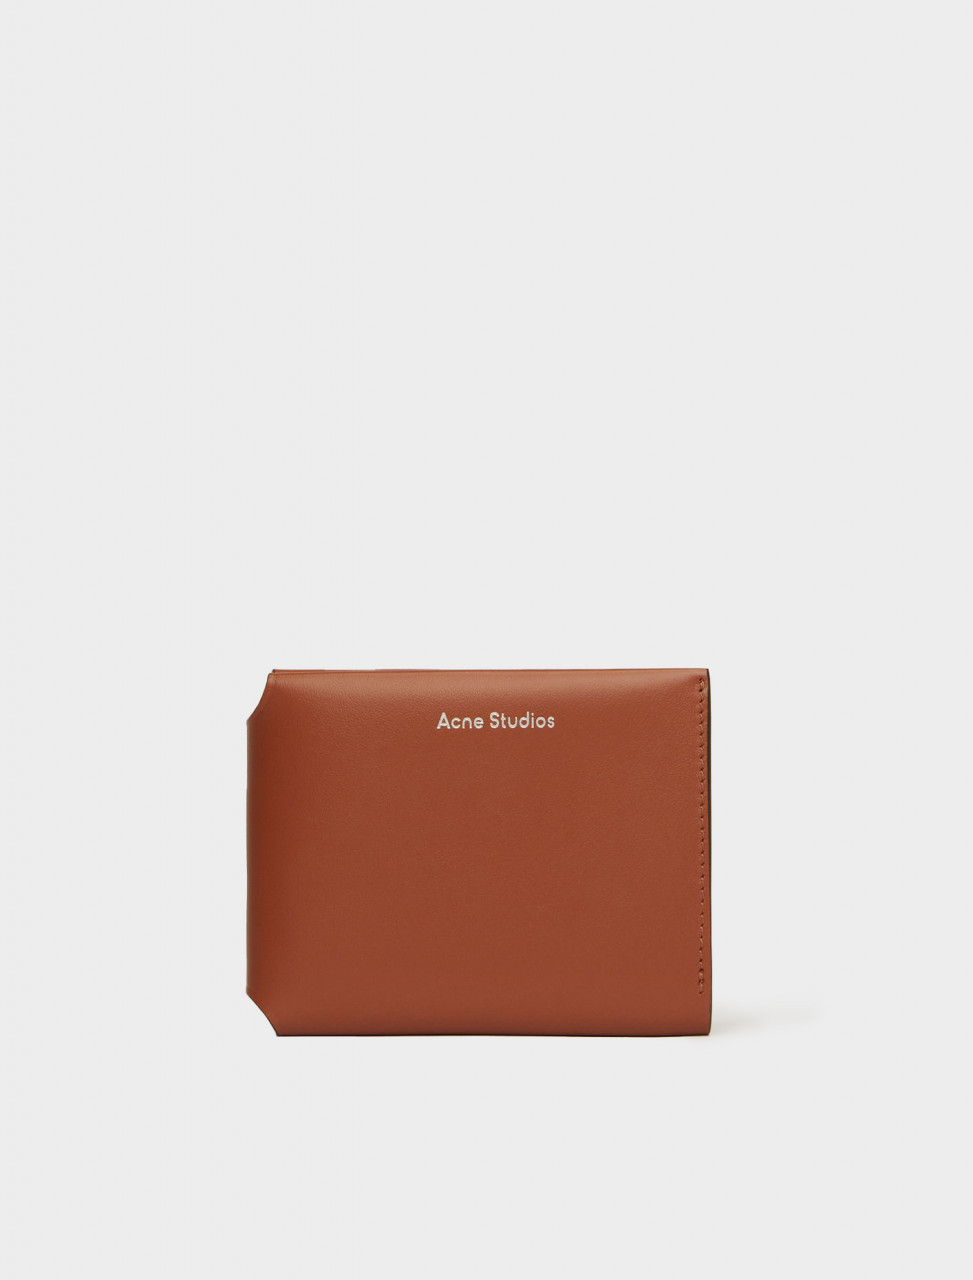 110-CG0097-ADS ACNE STUDIOS TRIFOLD CARD WALLET ALMOND BROWN